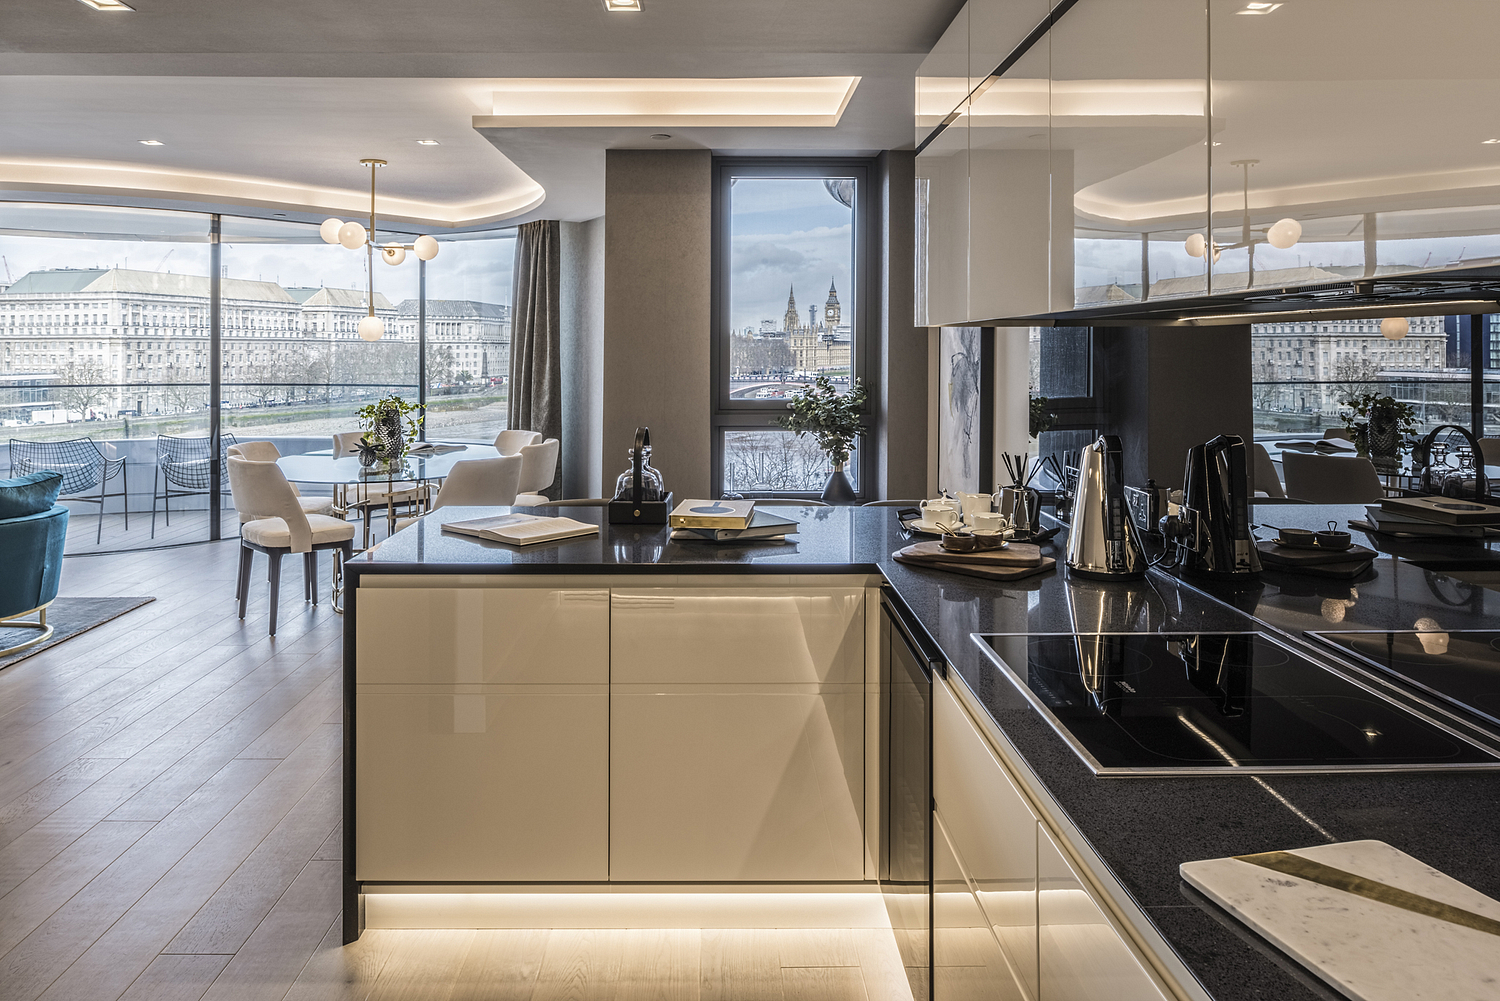 Apartment kitchen detail with view of London